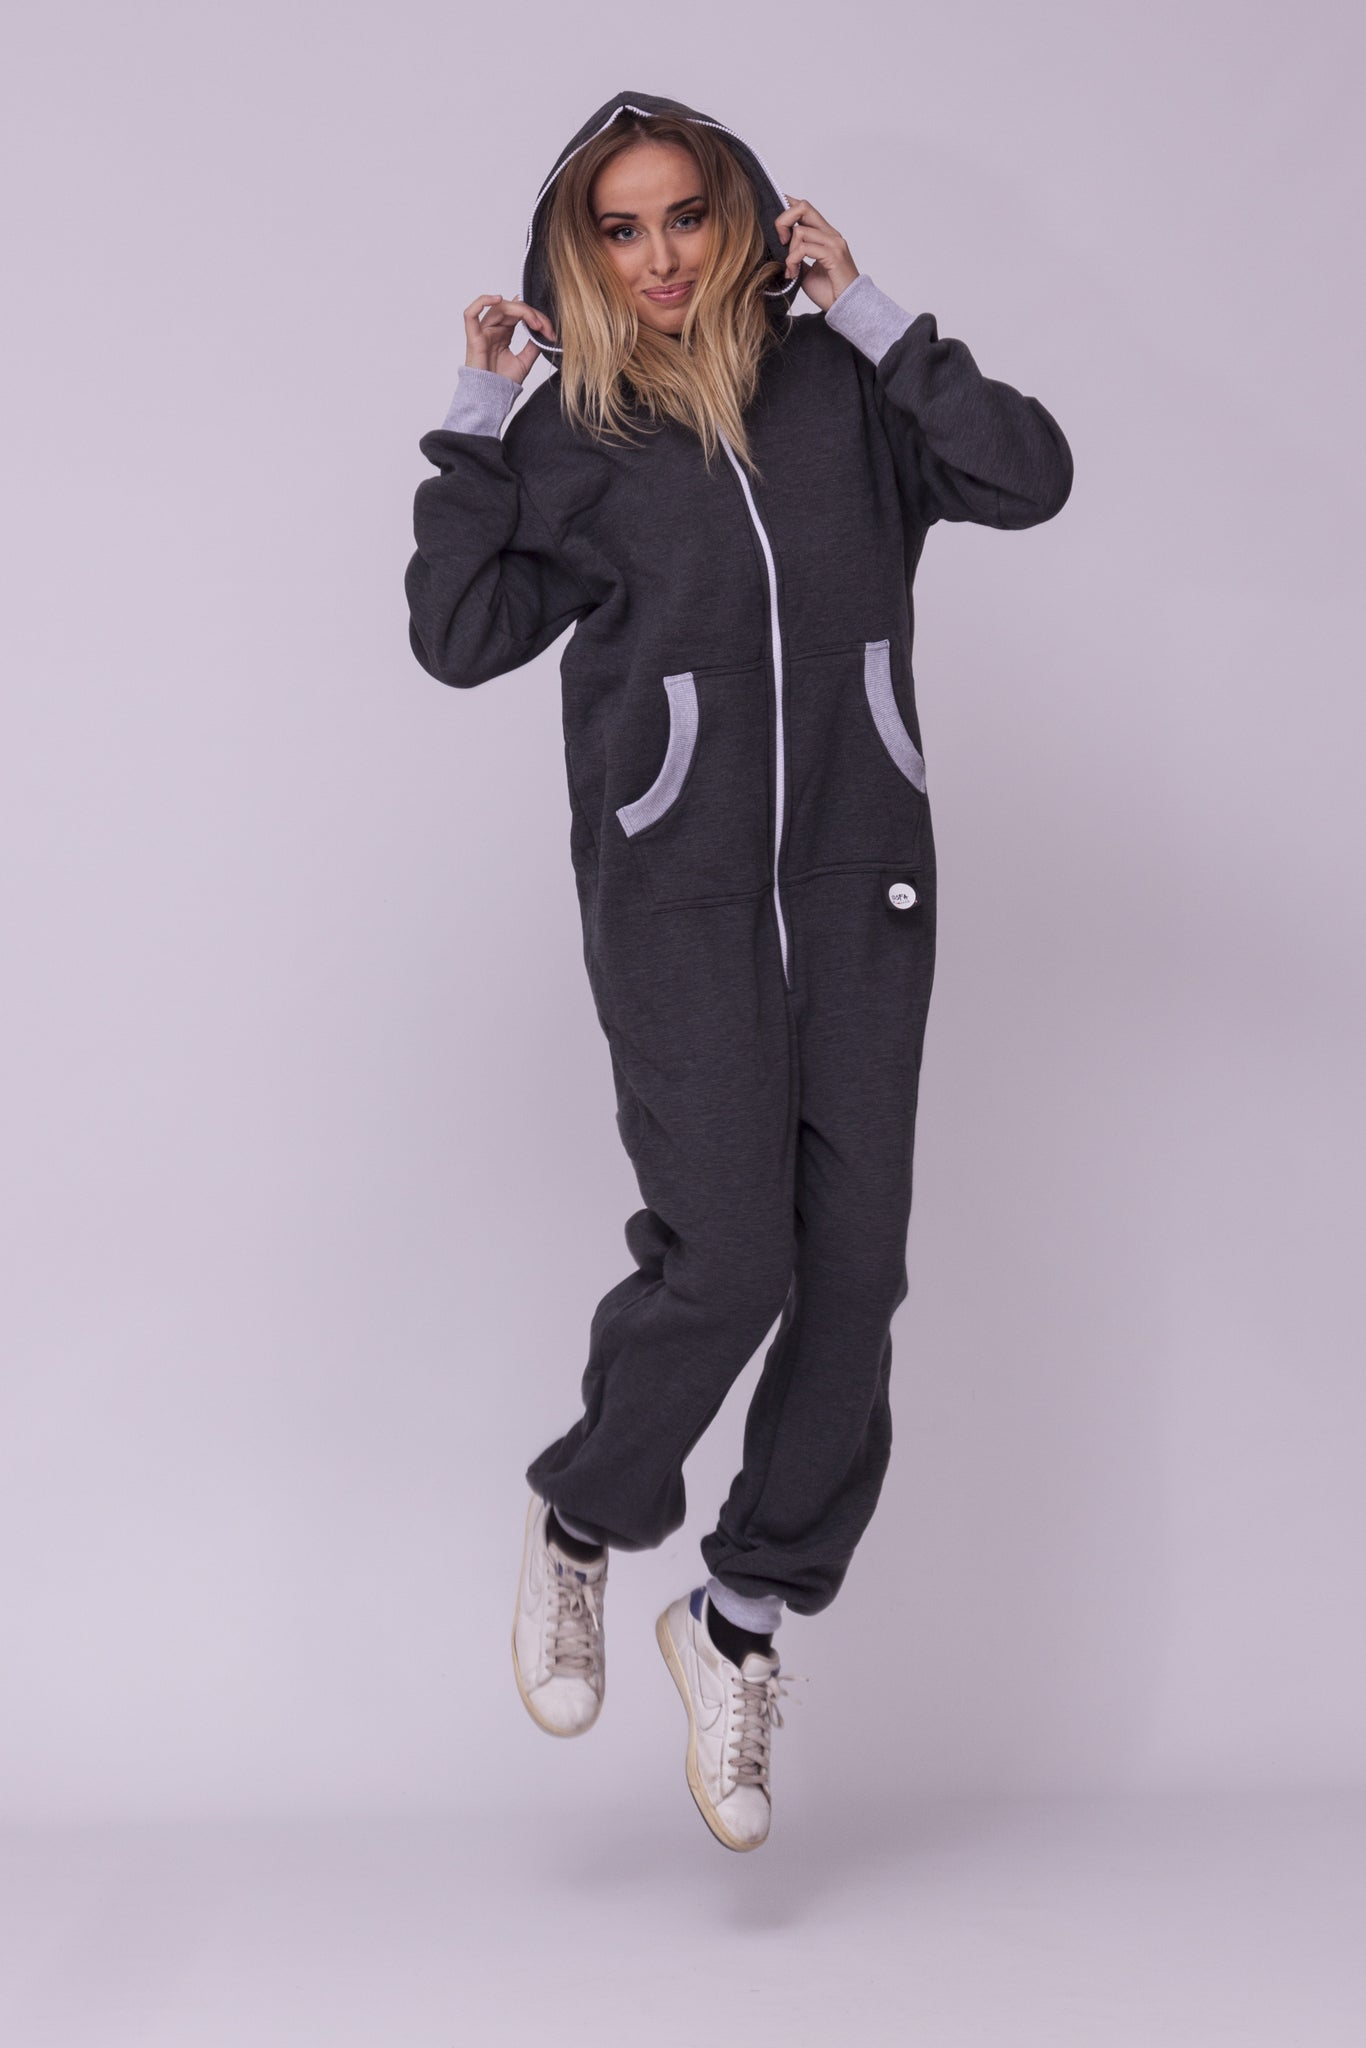 grey women onesie sofa killer